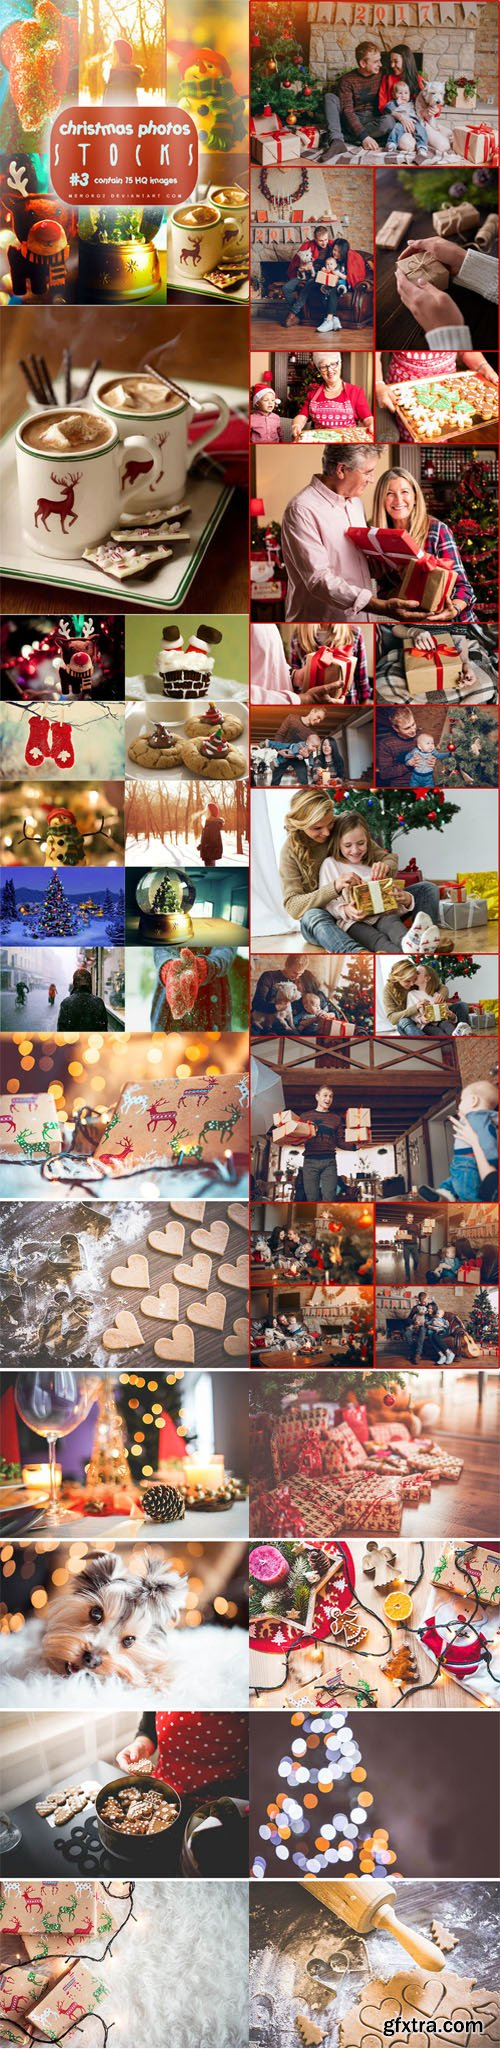 43 Christmas & New Year Photos & Wallpapers Collection 1